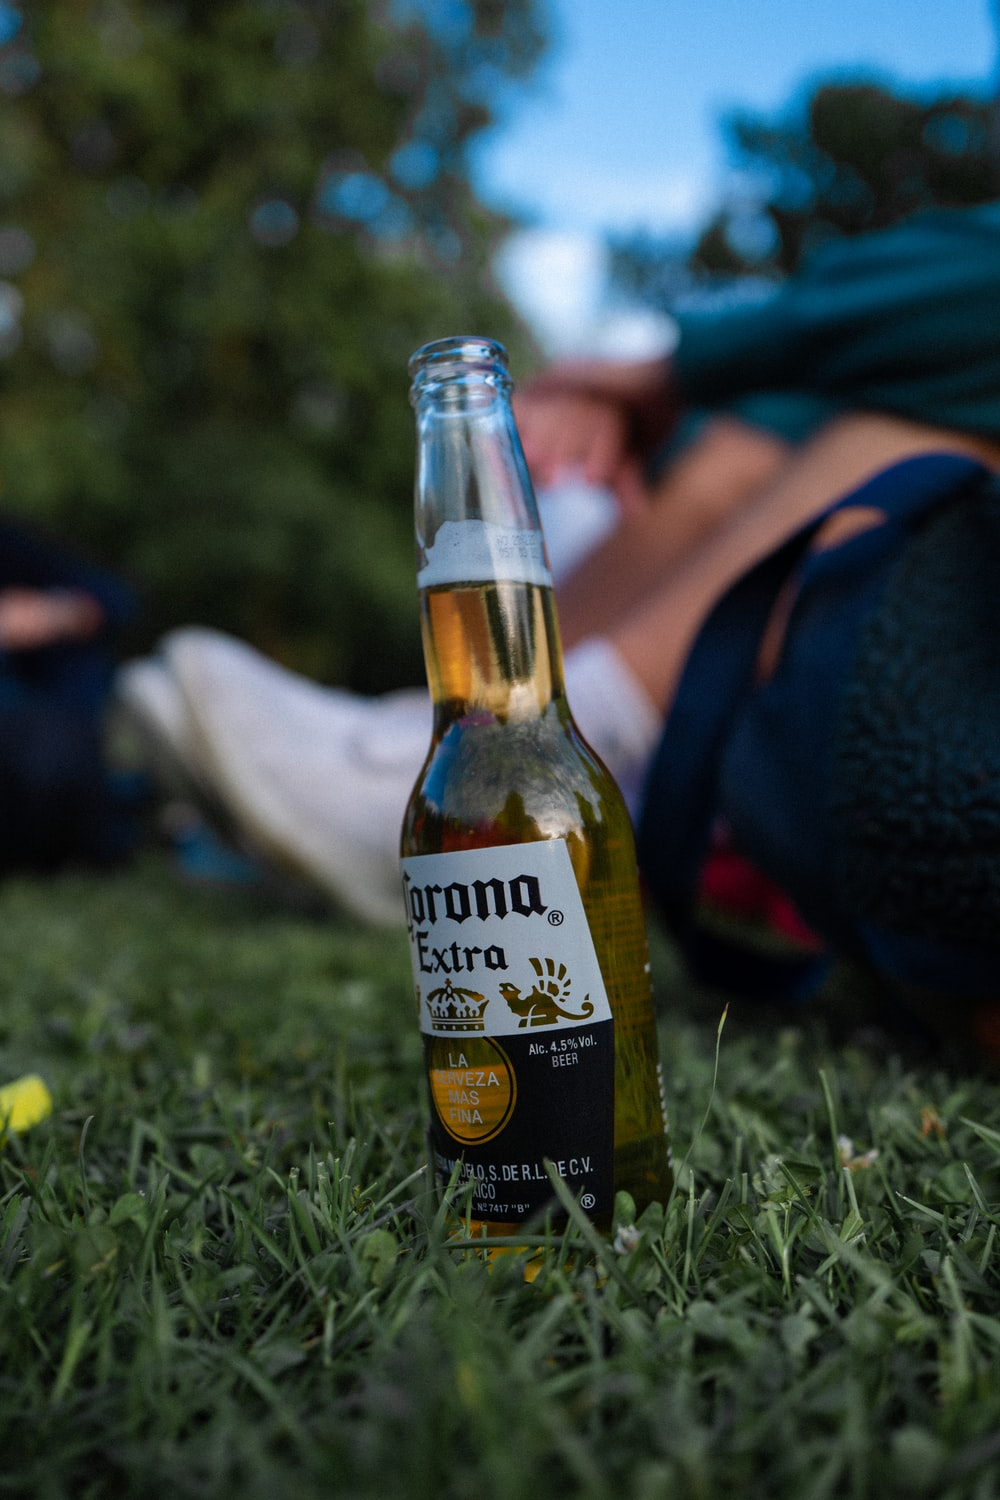 corona extra beer bottle on green grass